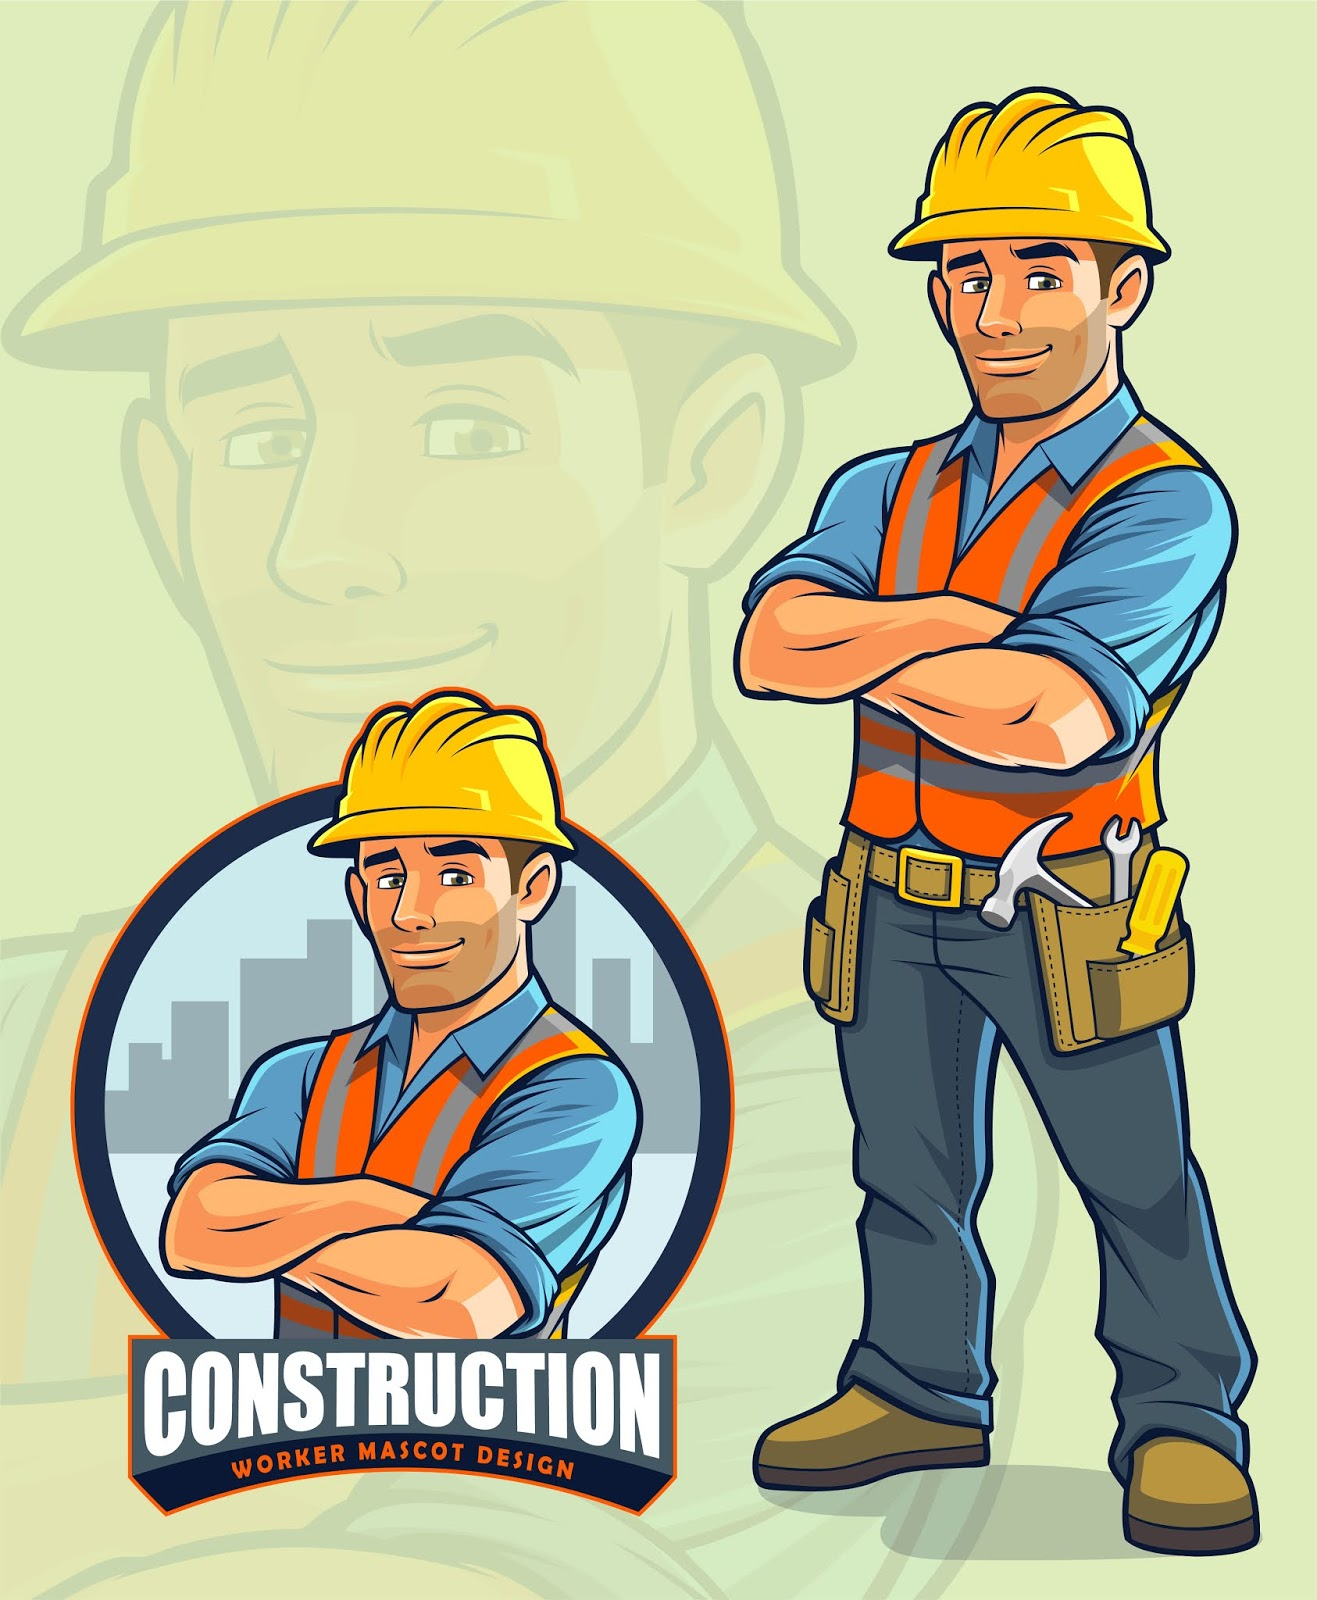 Construction Worker Mascot Design.jpg Free Download Vector CDR, AI, EPS and PNG Formats